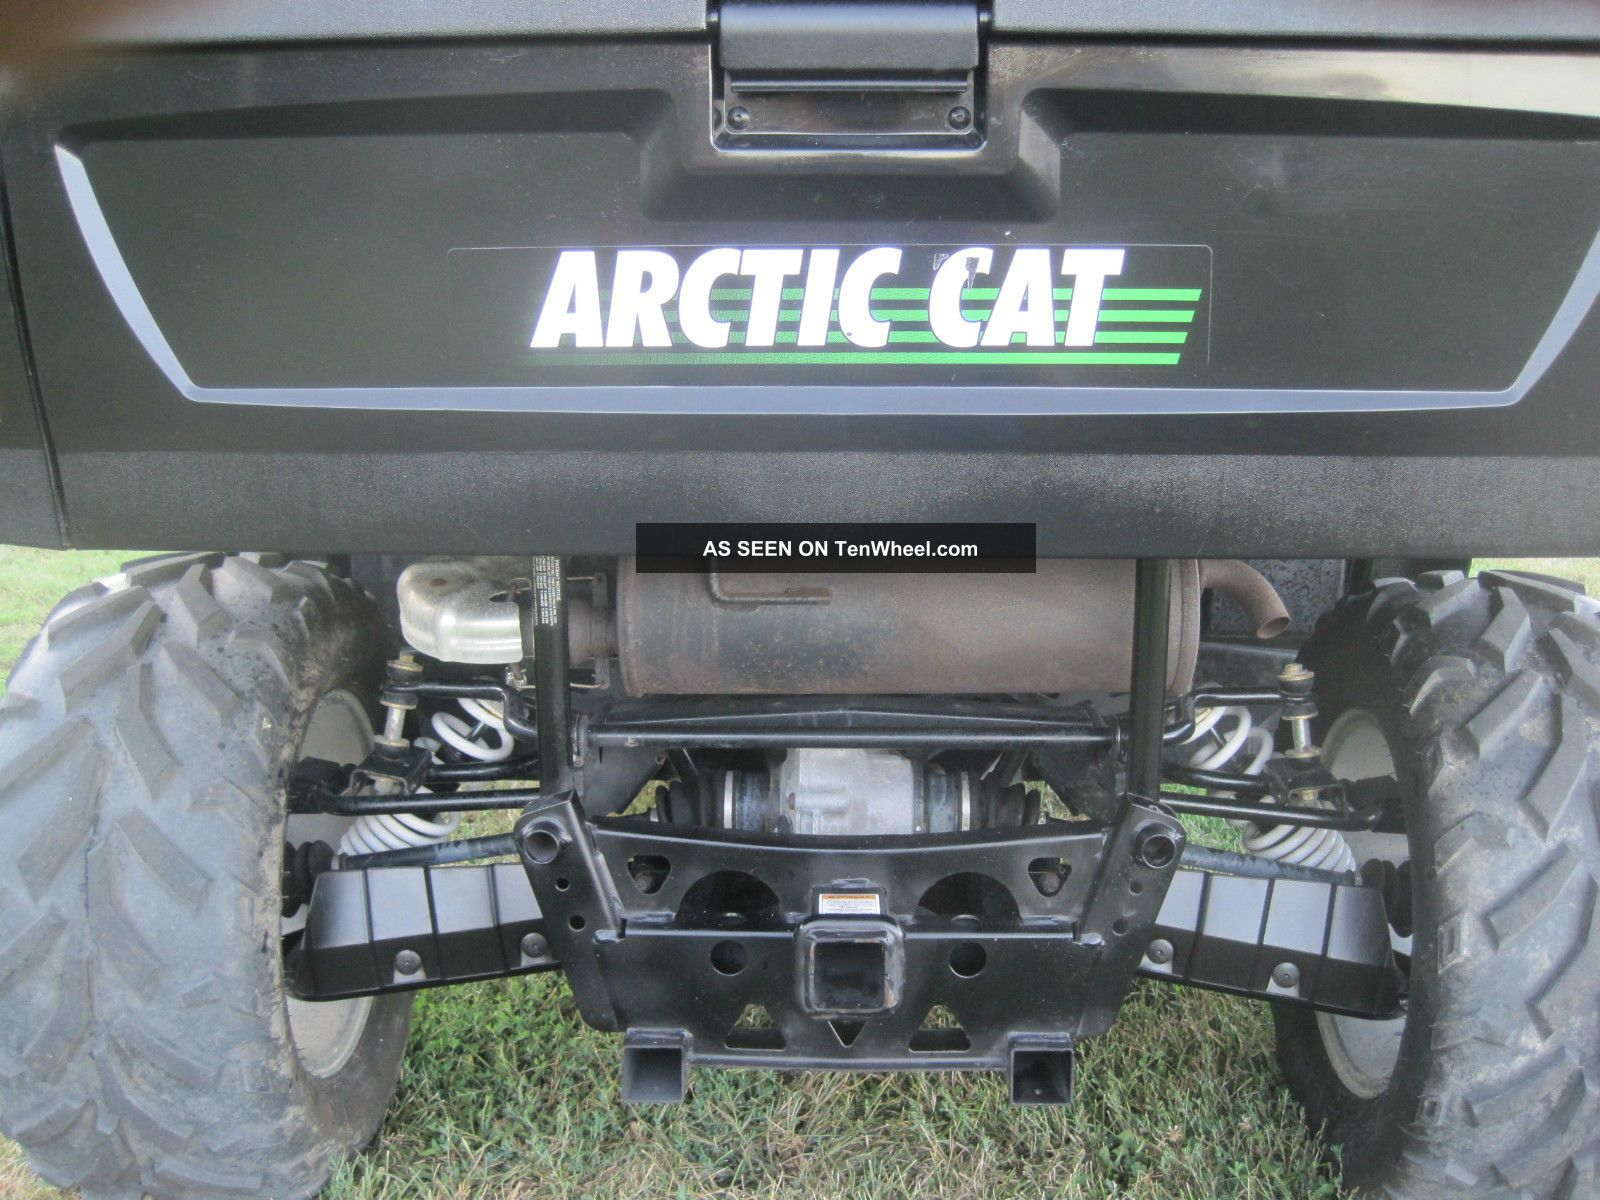 2015 arctic cat service manual